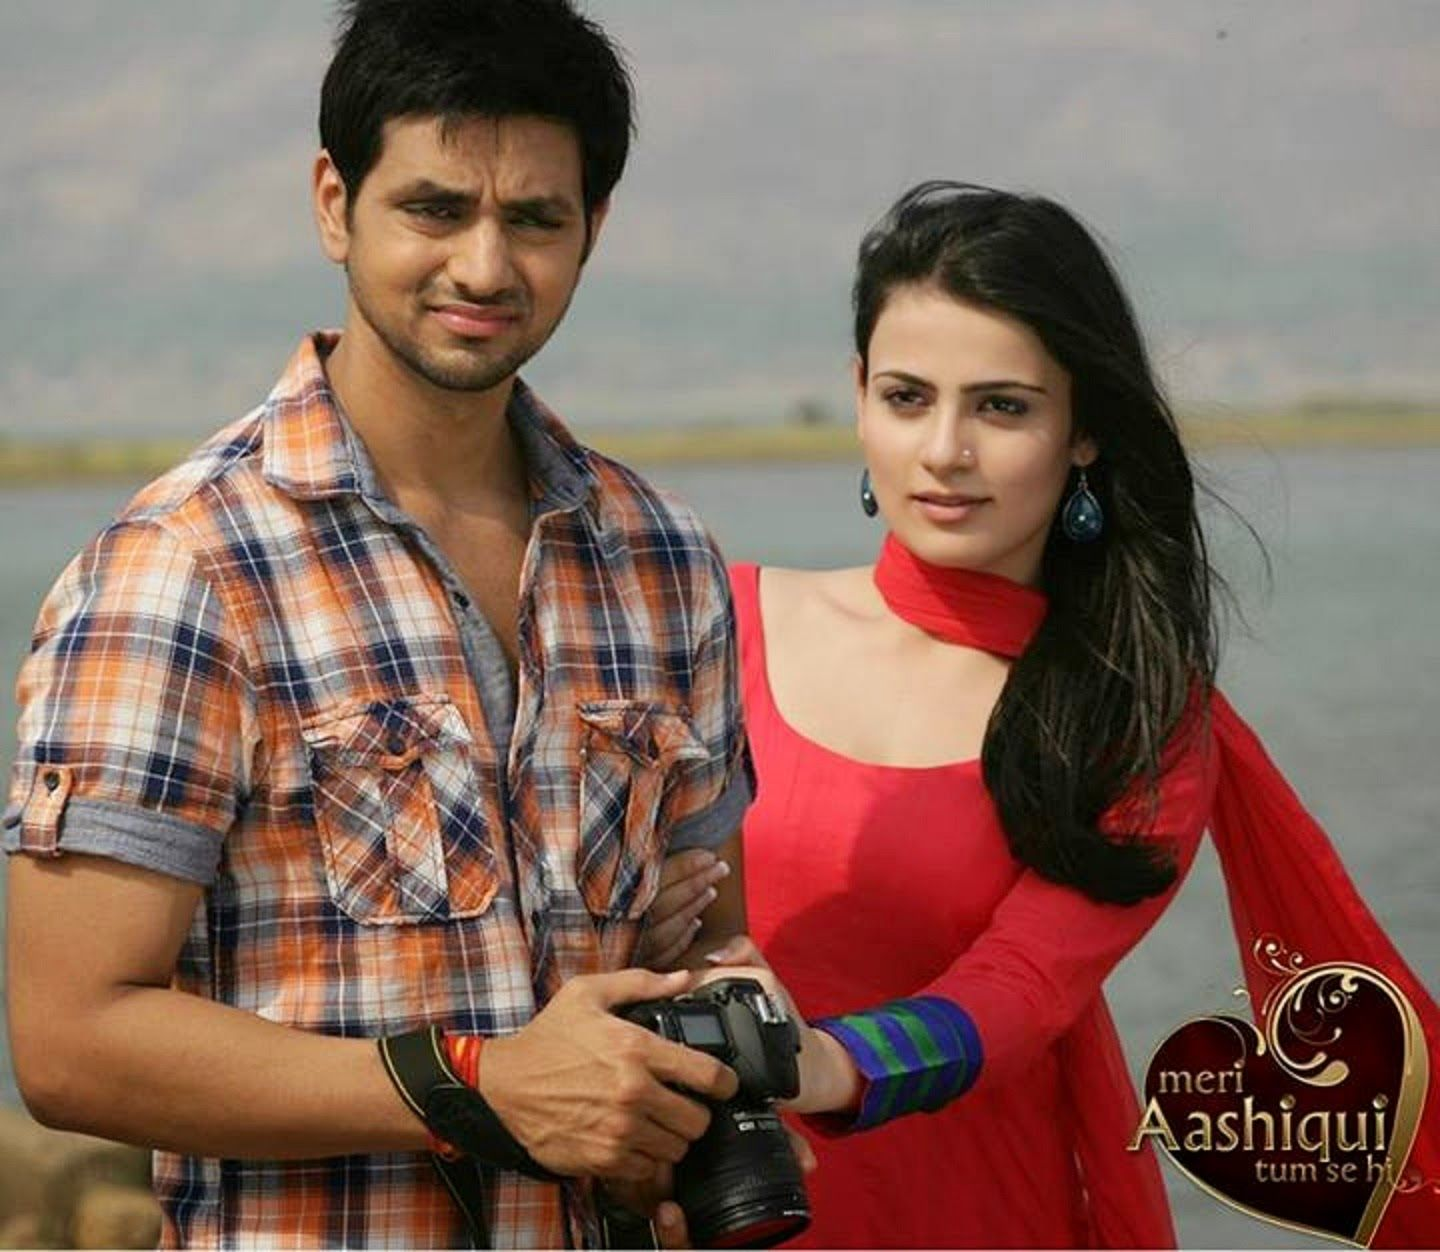 ranvir and ishani hd